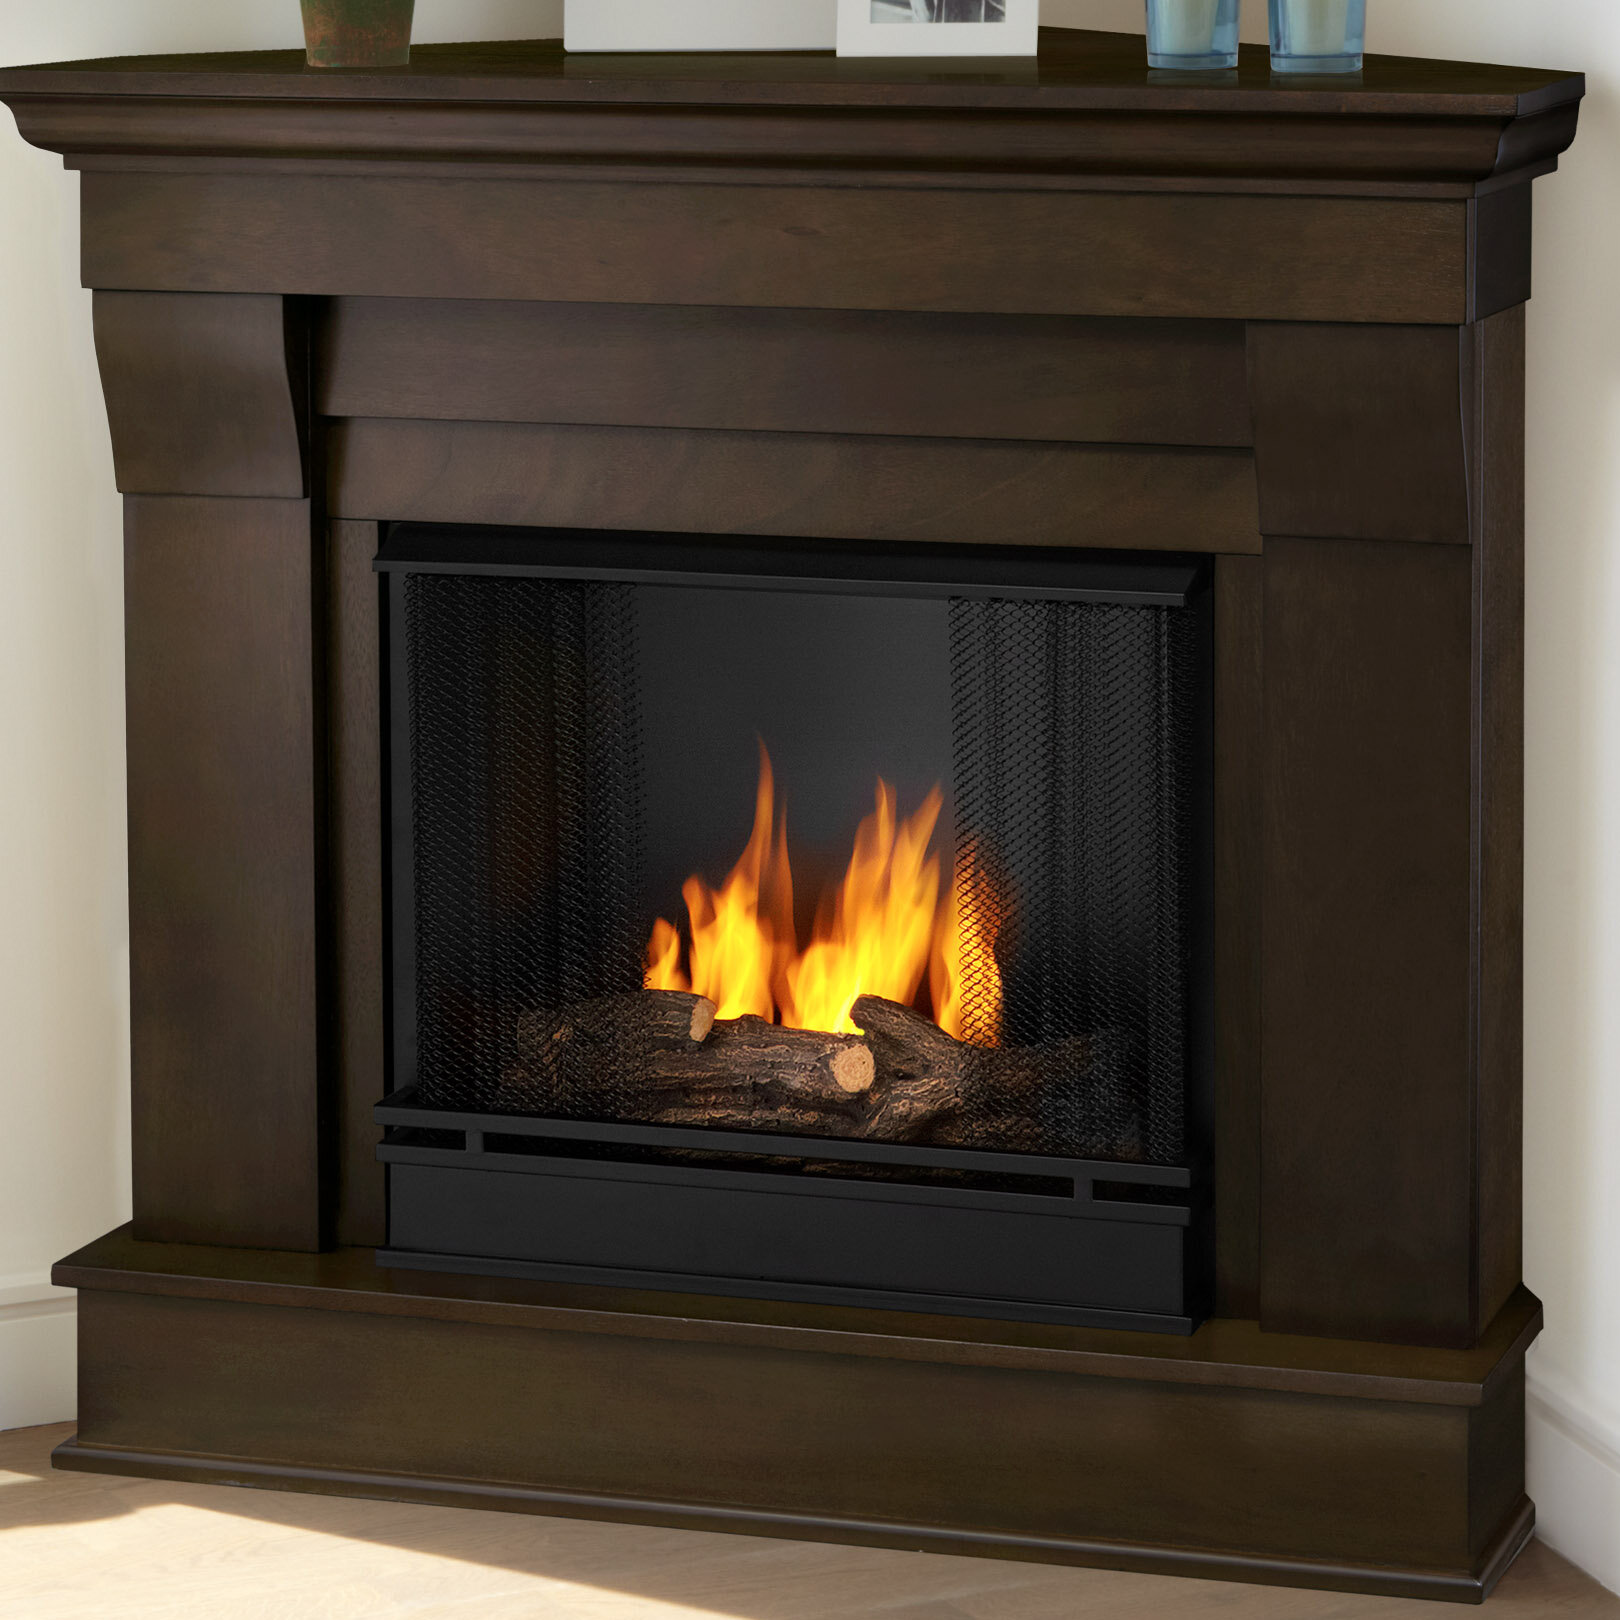 fireplace gel center valmont flame l neiltortorellacom entertainment fuel ventless com mccmatricschool real